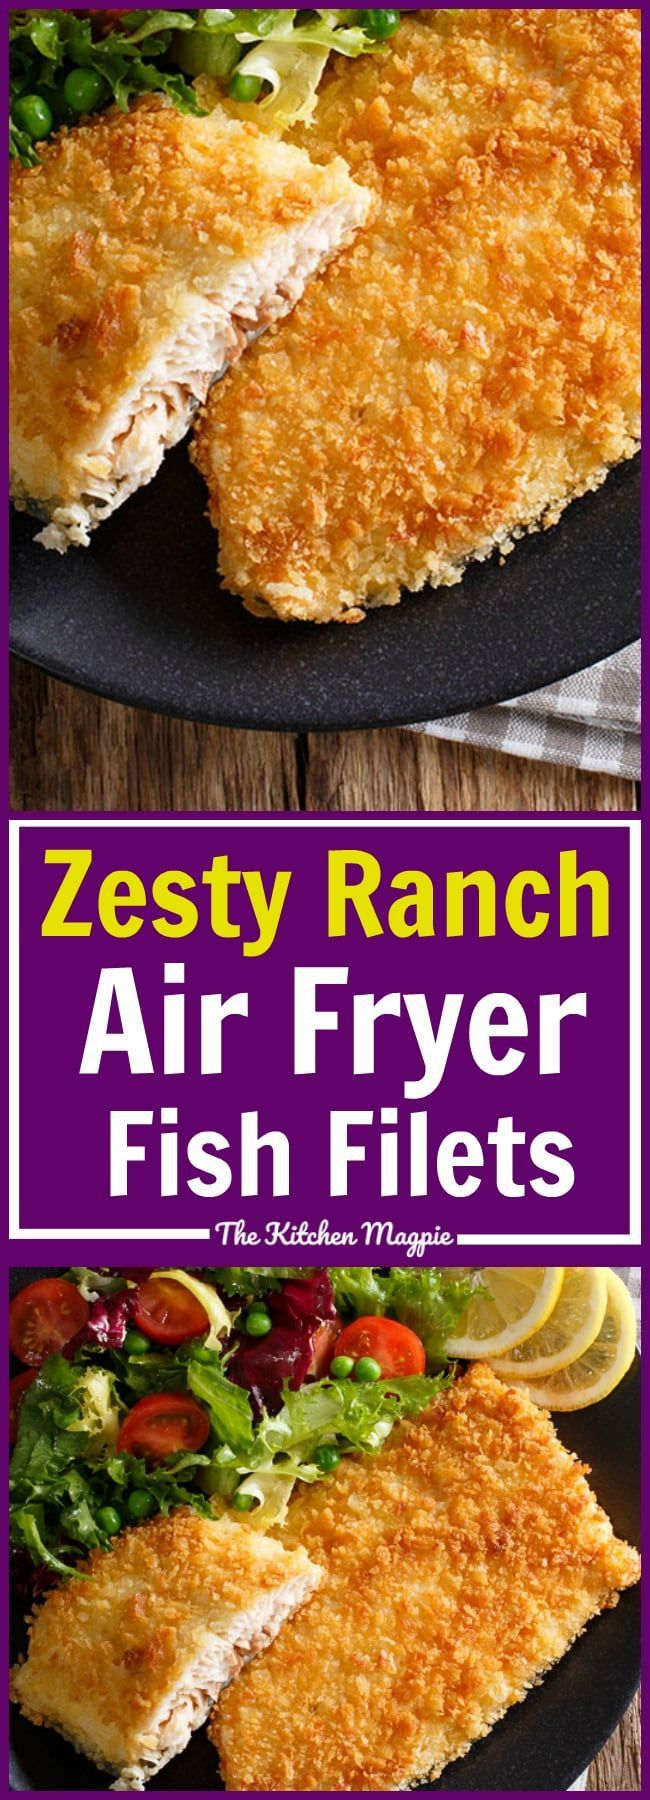 Zesty Ranch Air Fryer Fish Fillets! These are so easy and UNDER 300 CALORIES! #airfryer #recipe #fish